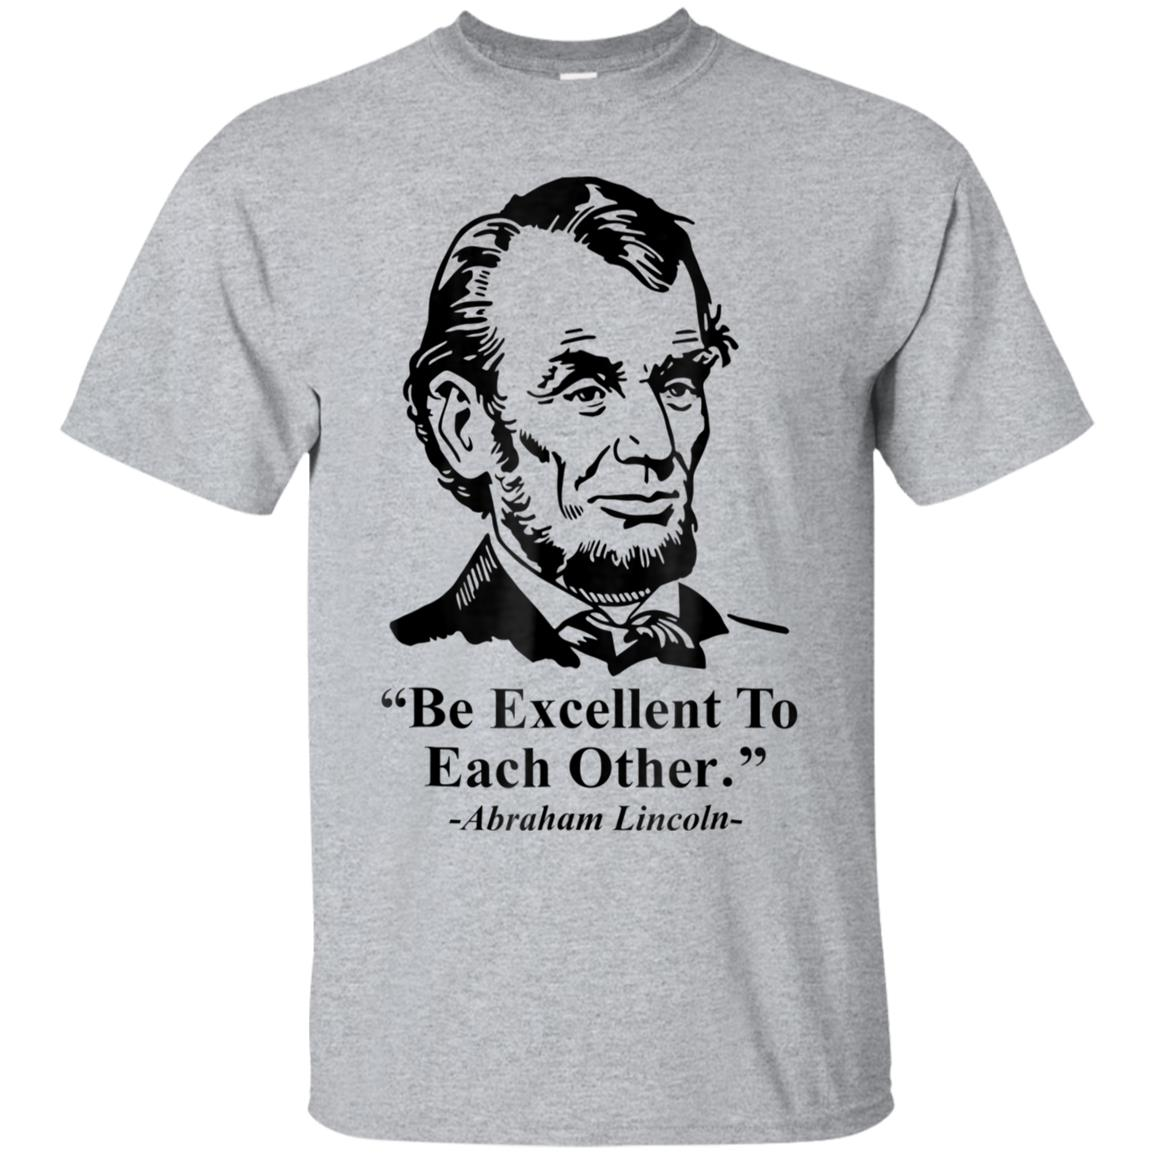 Be Excellent To Each Other Funny Abe Lincoln quote shirt 99promocode